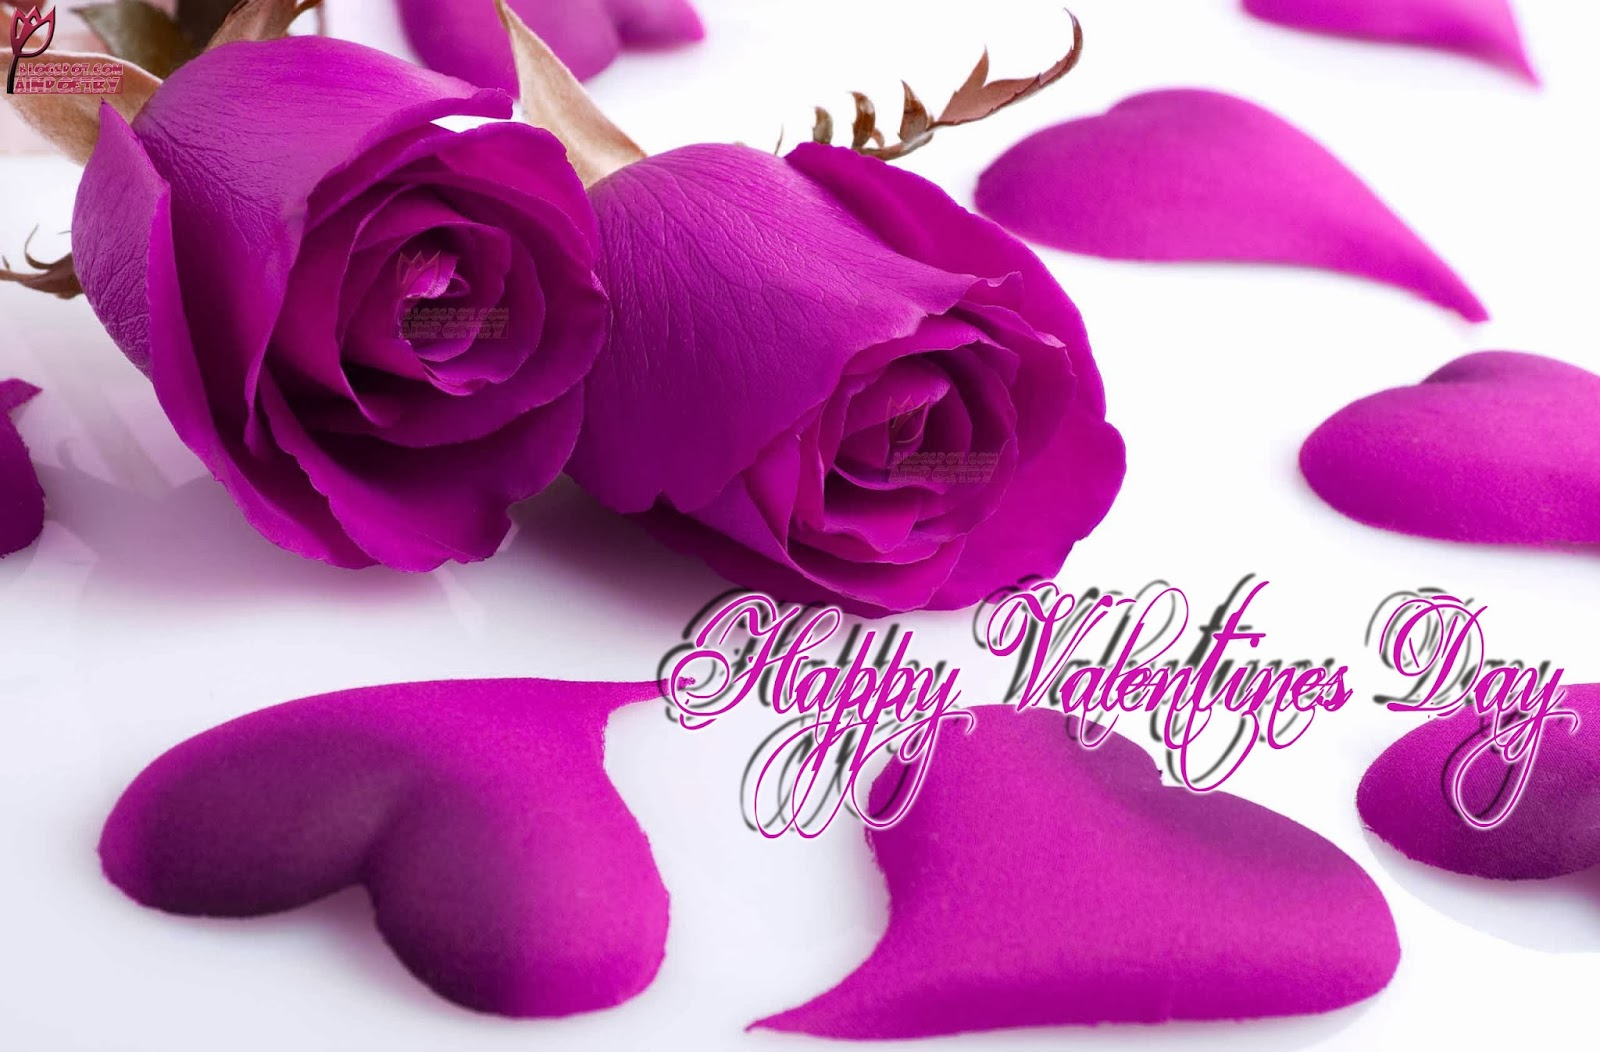 Happy Valentines Day Wishes Wallpaper With Flowers And Hearts Image HD